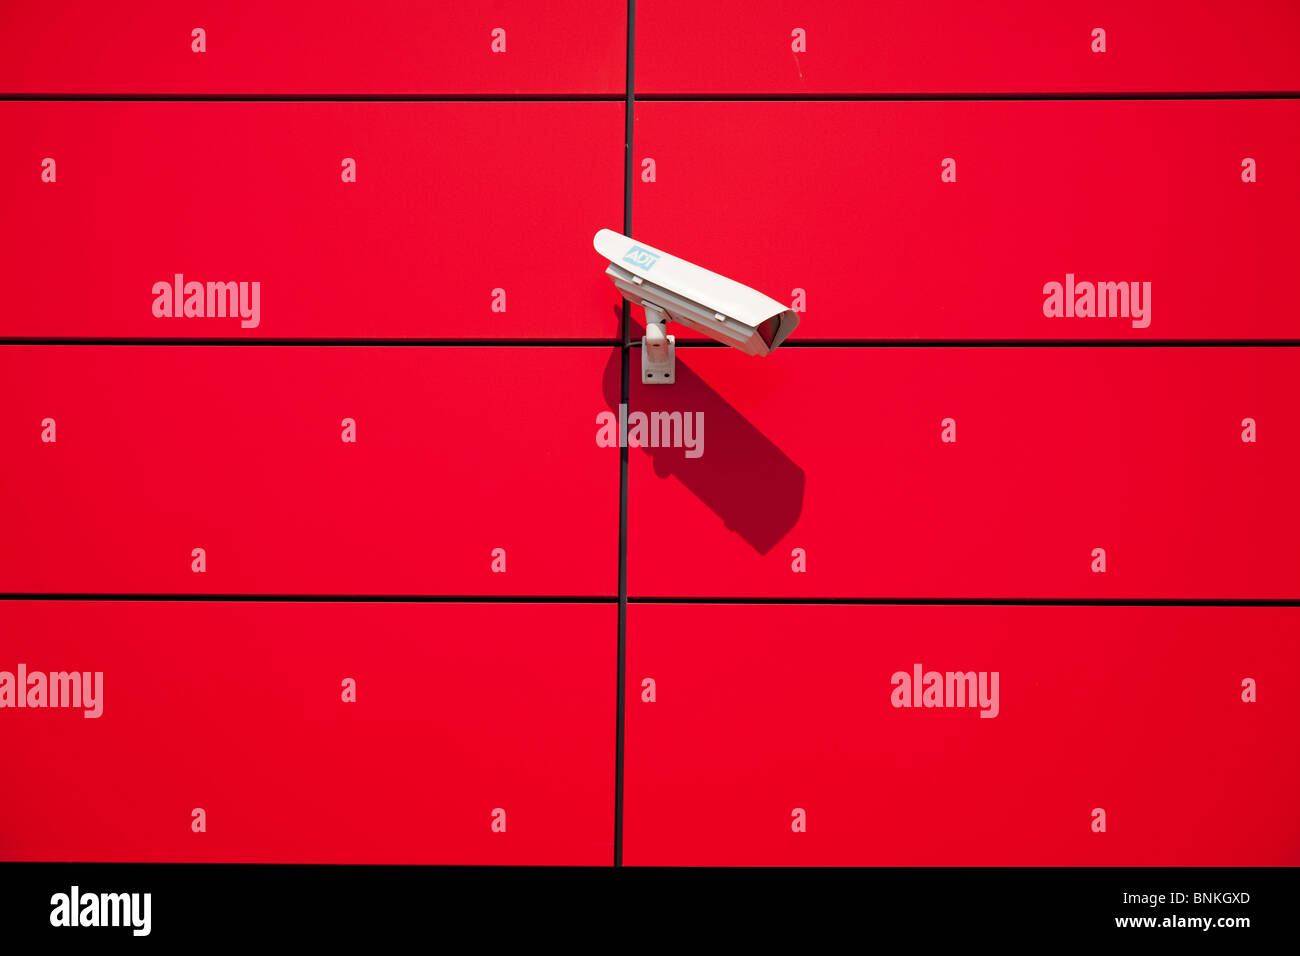 Surveillance camera at a red, modern house front - Stock Image